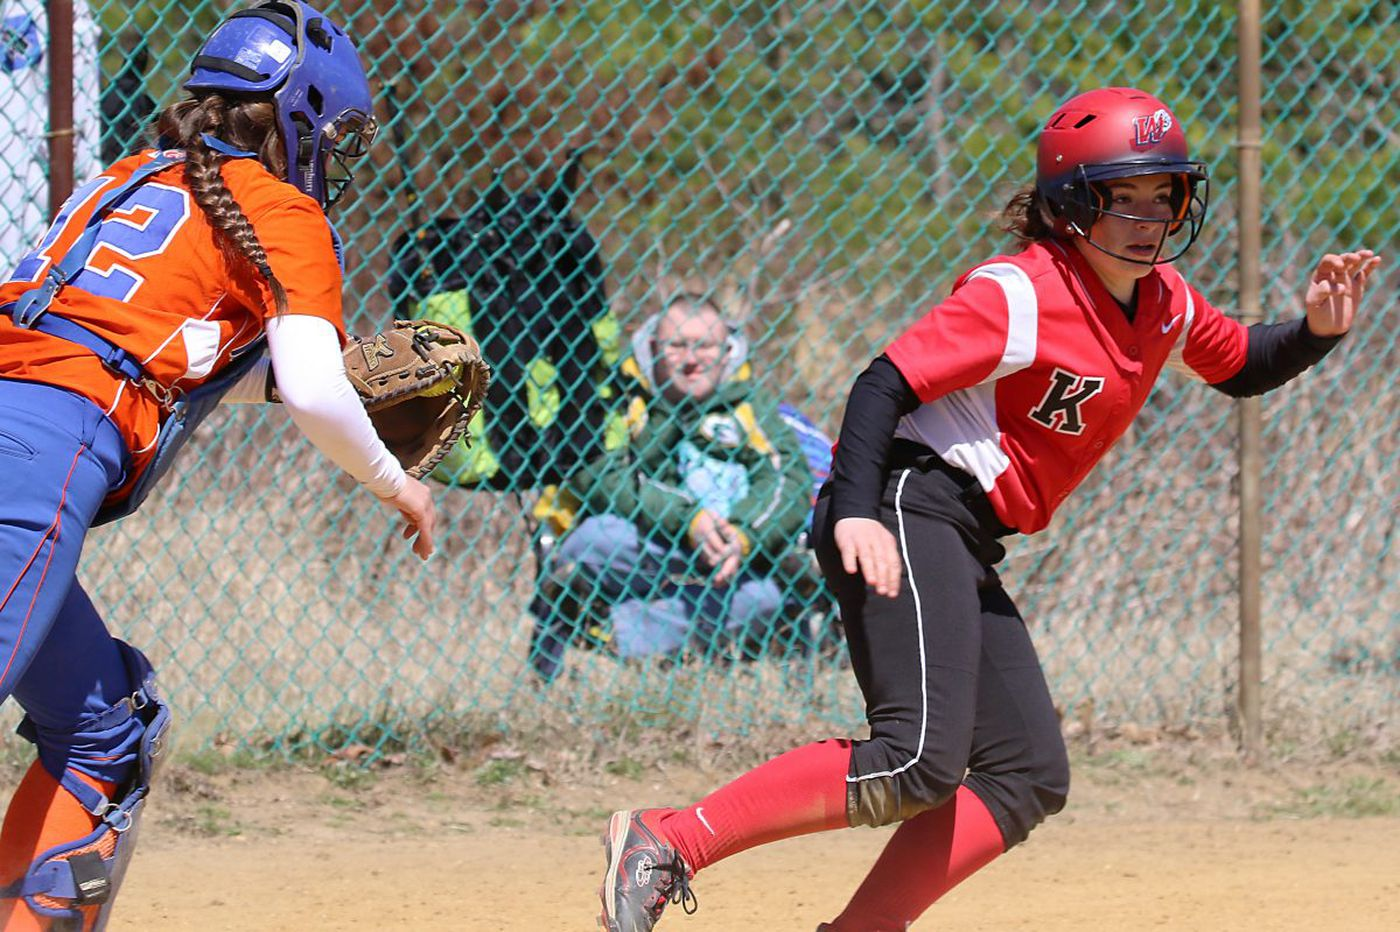 Wednesday's South Jersey roundup: Danielle Dominik tosses complete game for Kingsway